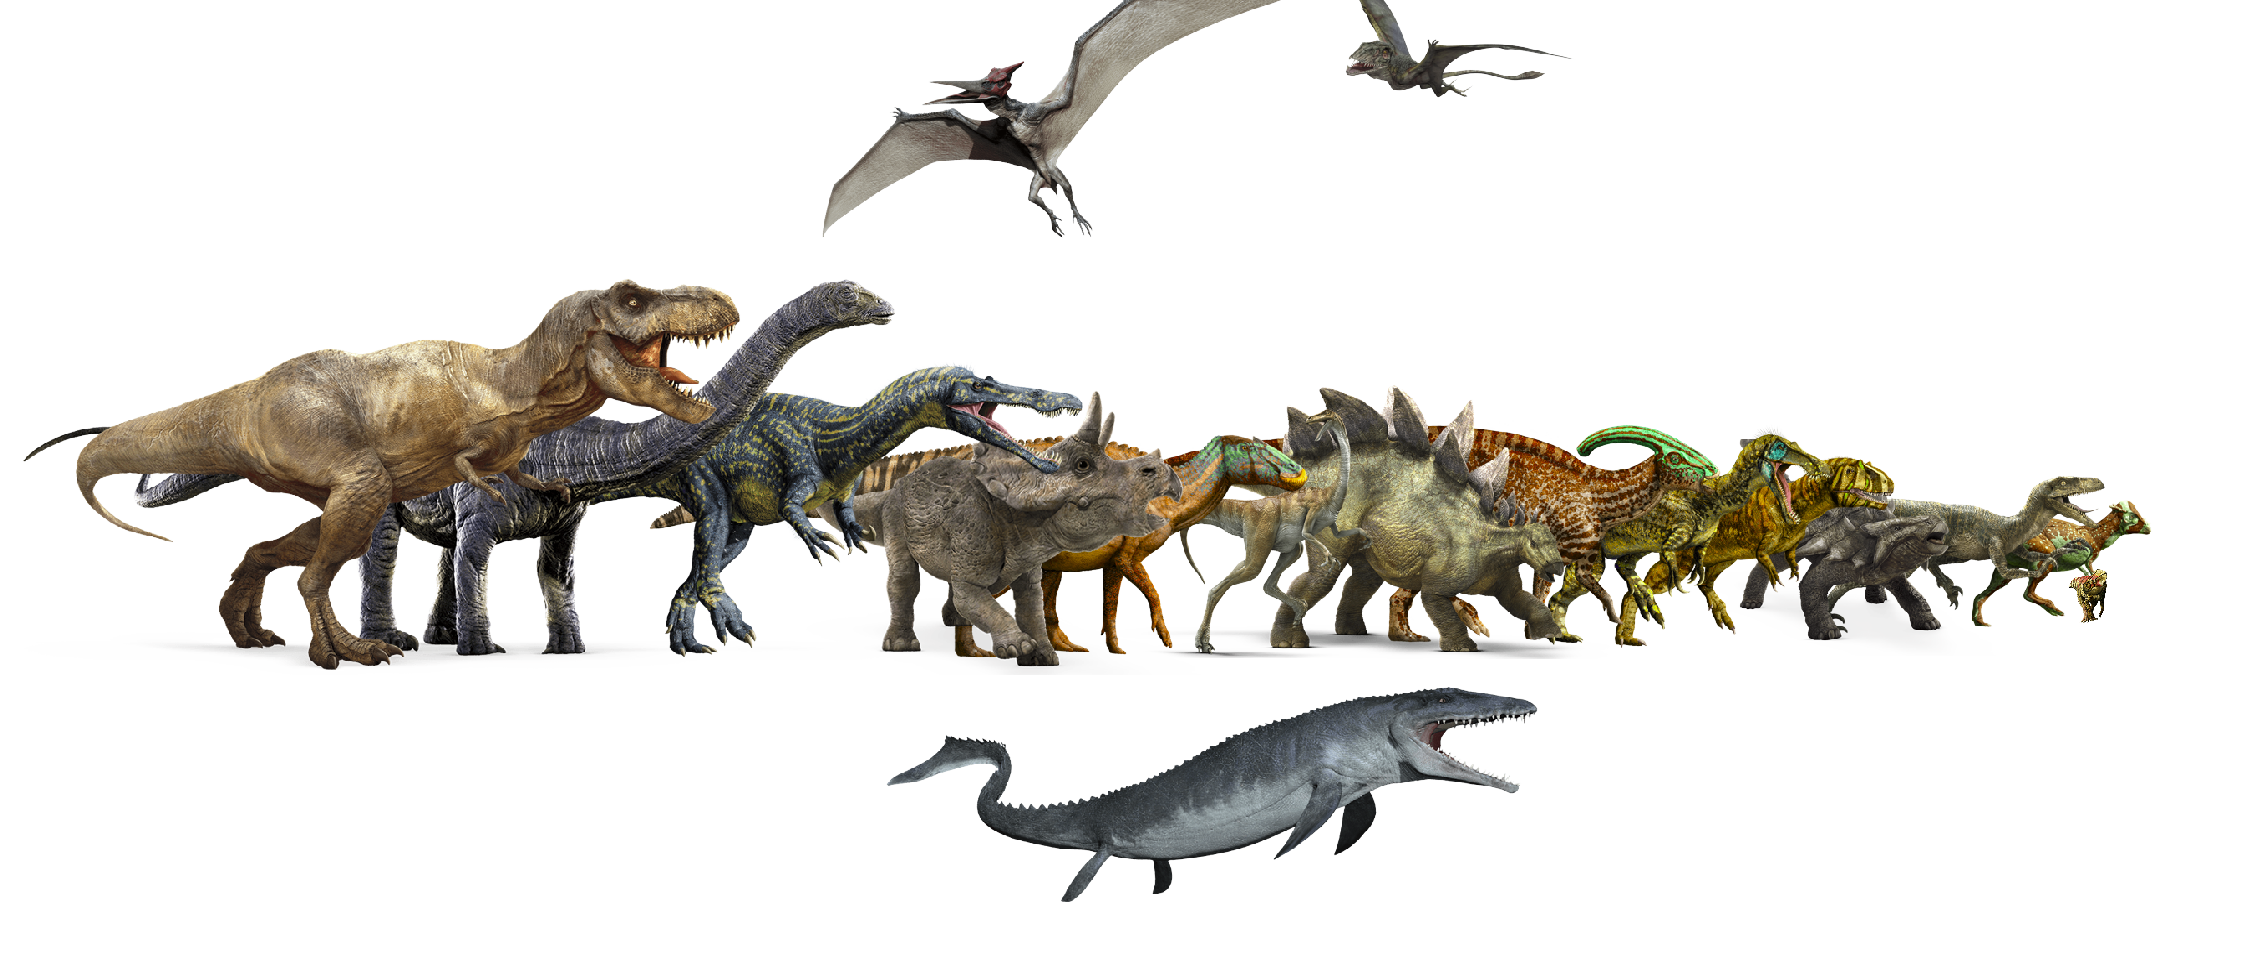 dinosaur clipart transparent background pencil and #18698